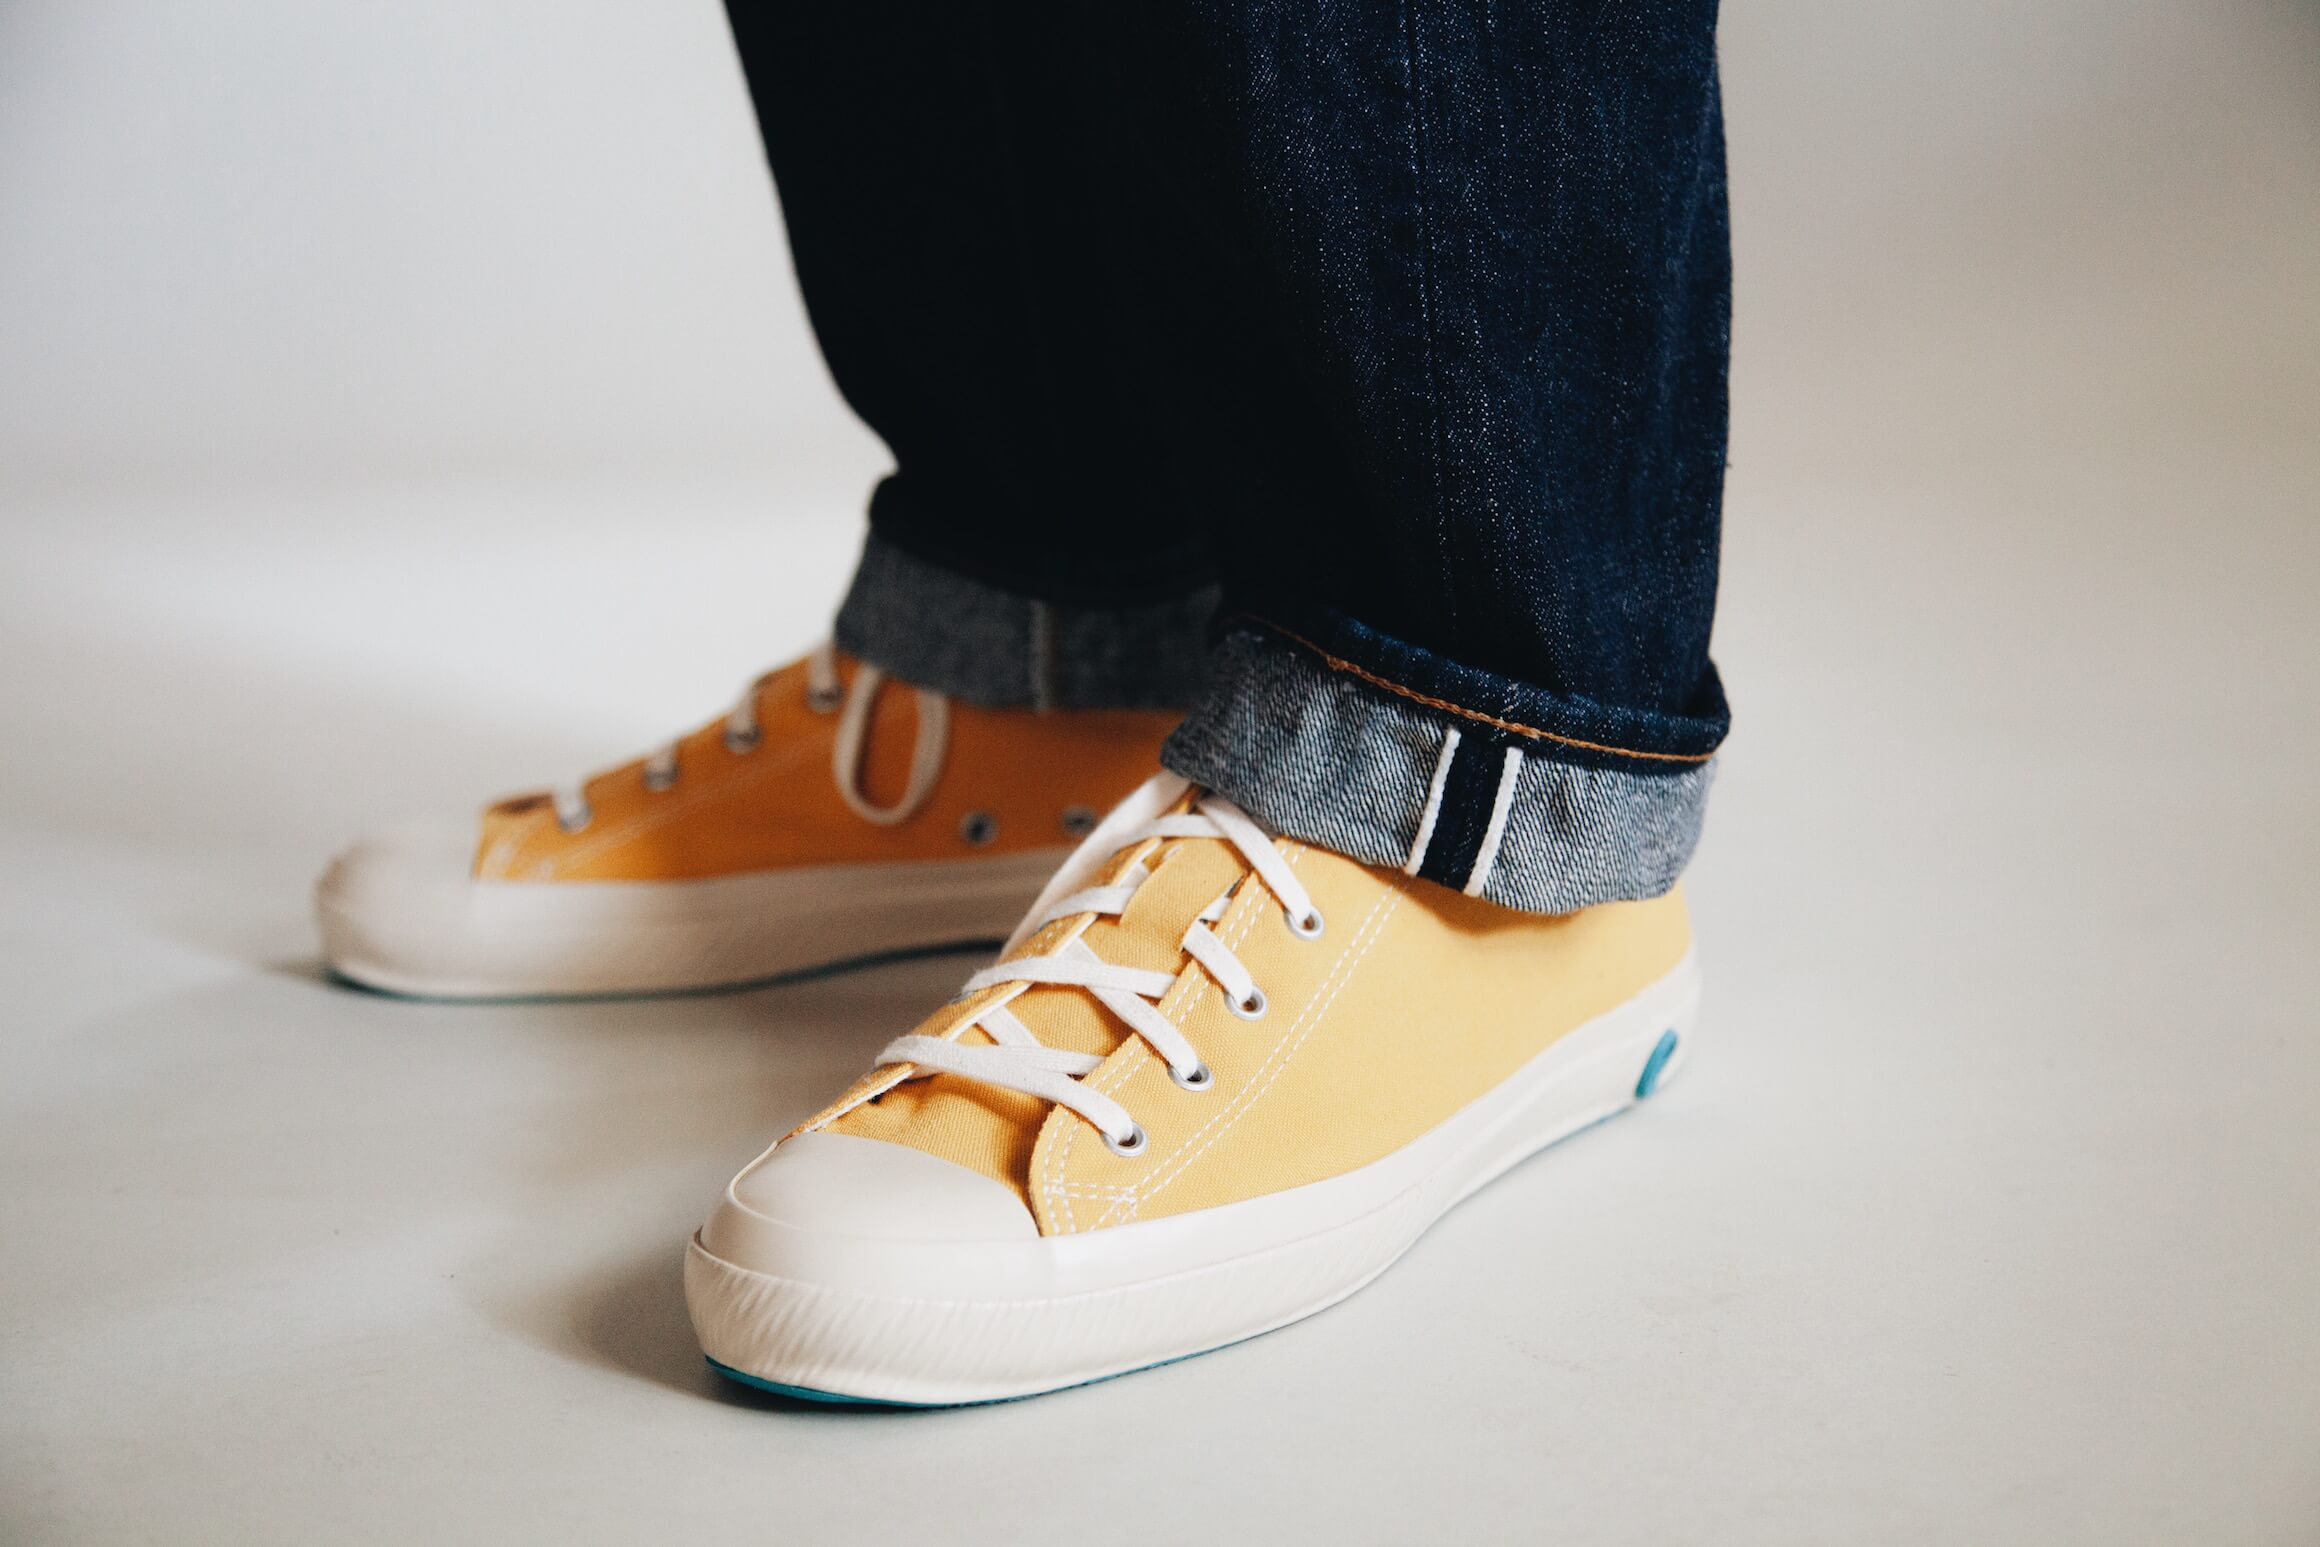 orSlow 105 Standard One Wash jeans cuff detail and shoes like pottery sneakers on body